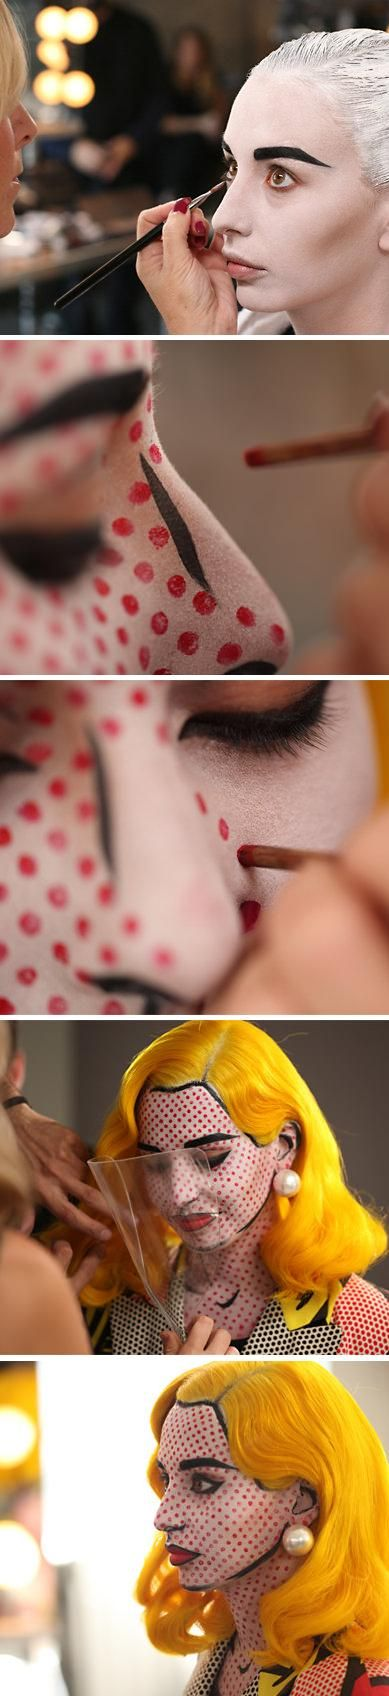 A 'how-to' on the make-up on this Awesome photograph!!! @Angela Holsinger